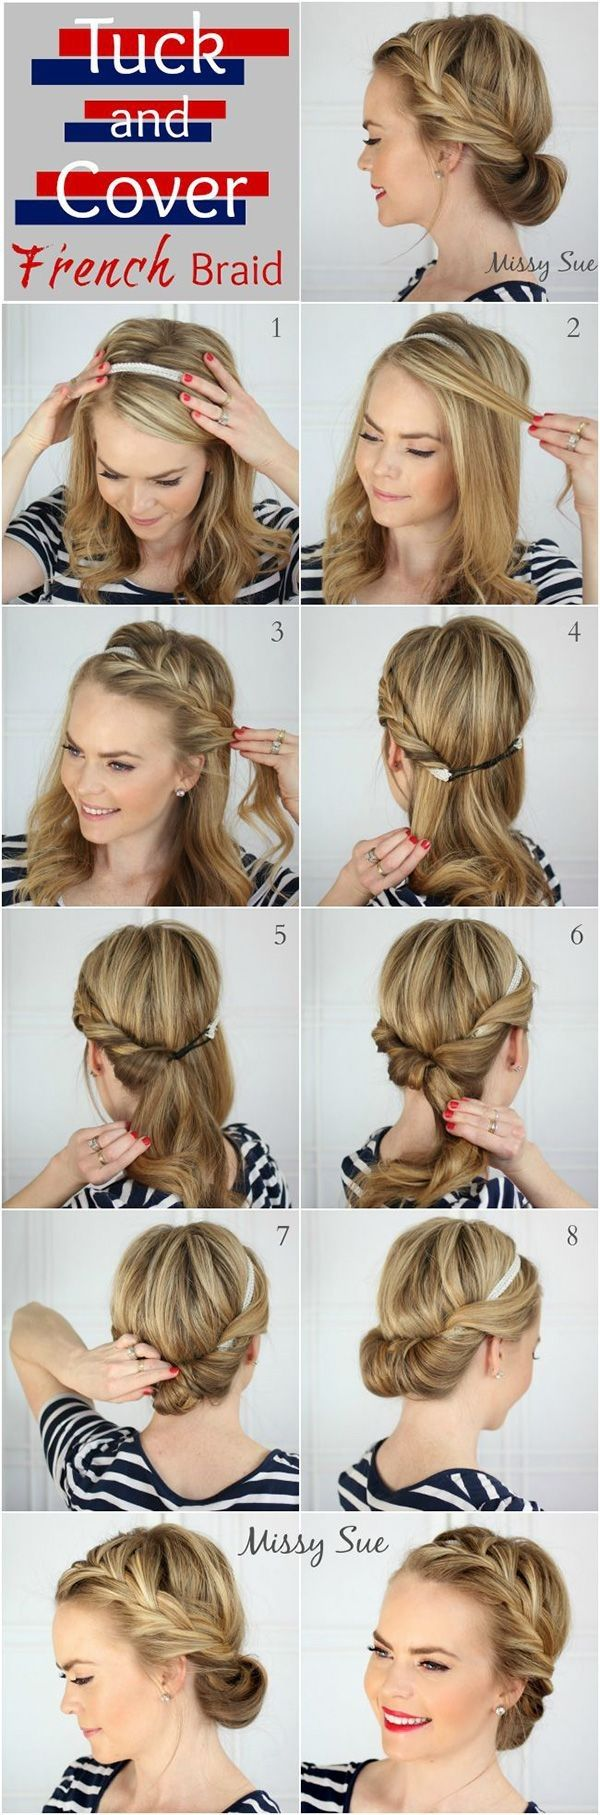 25+ trending five minute hairstyles ideas on pinterest | 5 minute